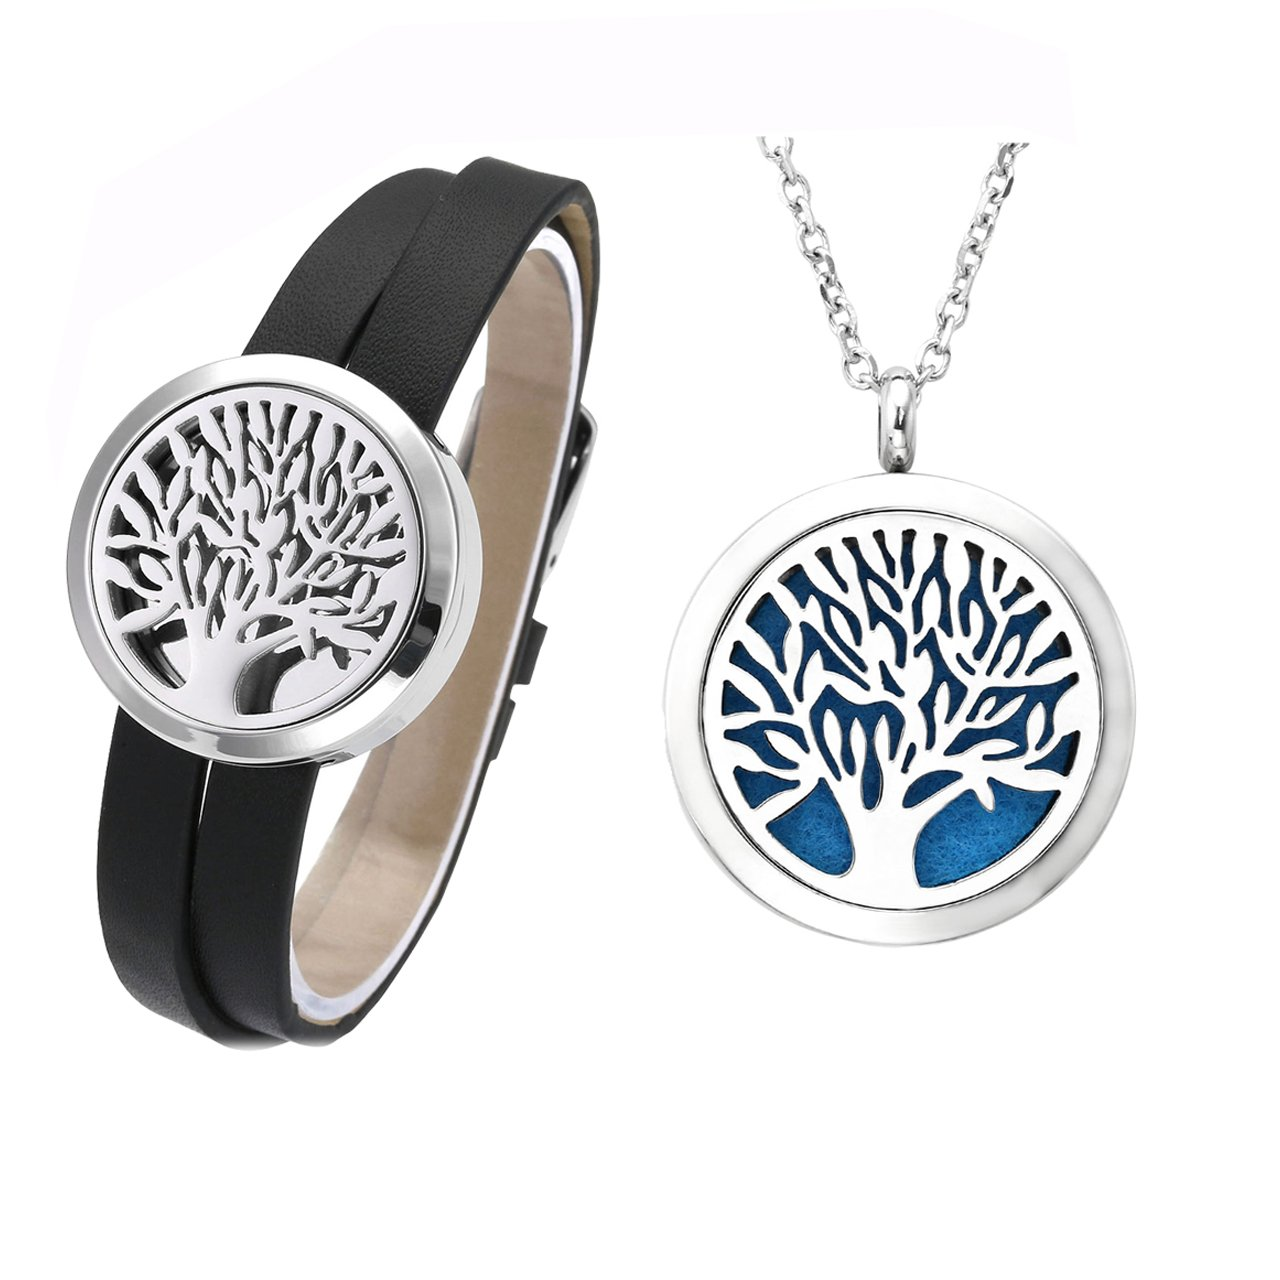 Jovivi 30mm Tree Of Life Essential Oil Diffuser Locket Detachable Genuine Leather Bracelet and Aromatherapy Pendant Necklace Set w/12 Felt Pads and Box by Jovivi (Image #8)